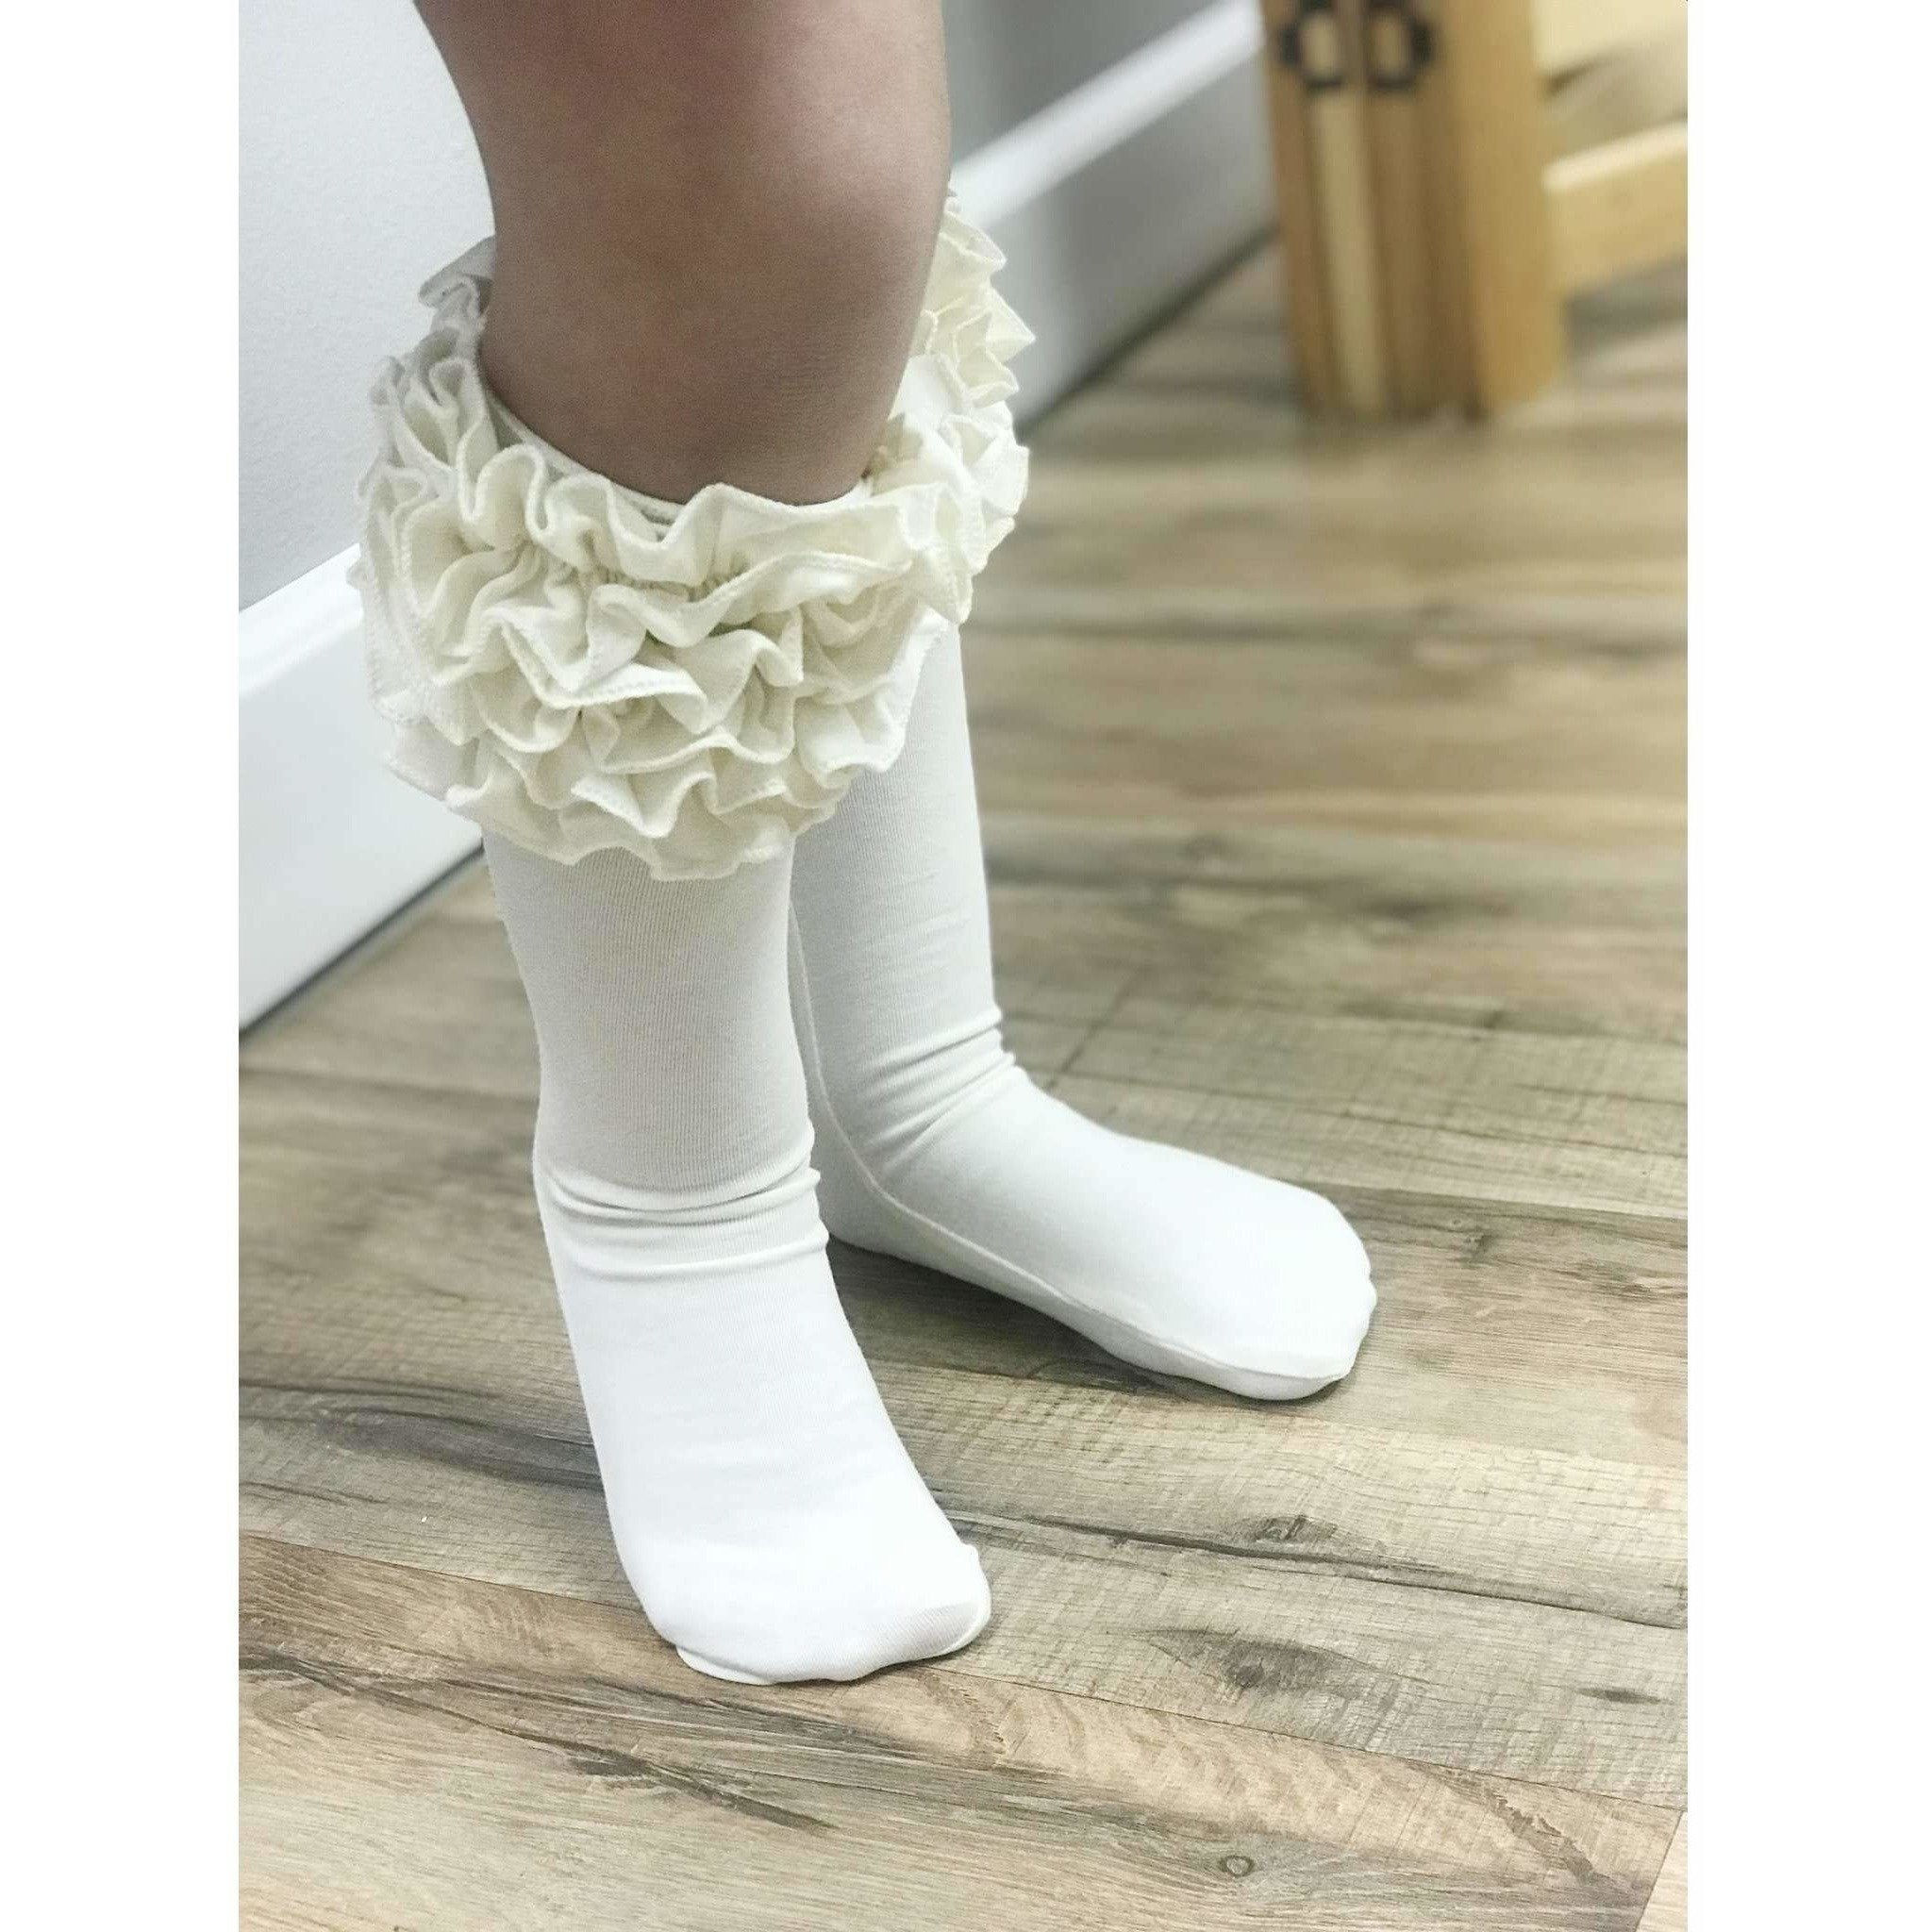 Adorable Essentials, Icing Socks,socks & tights,Adorable Essentials, LLC